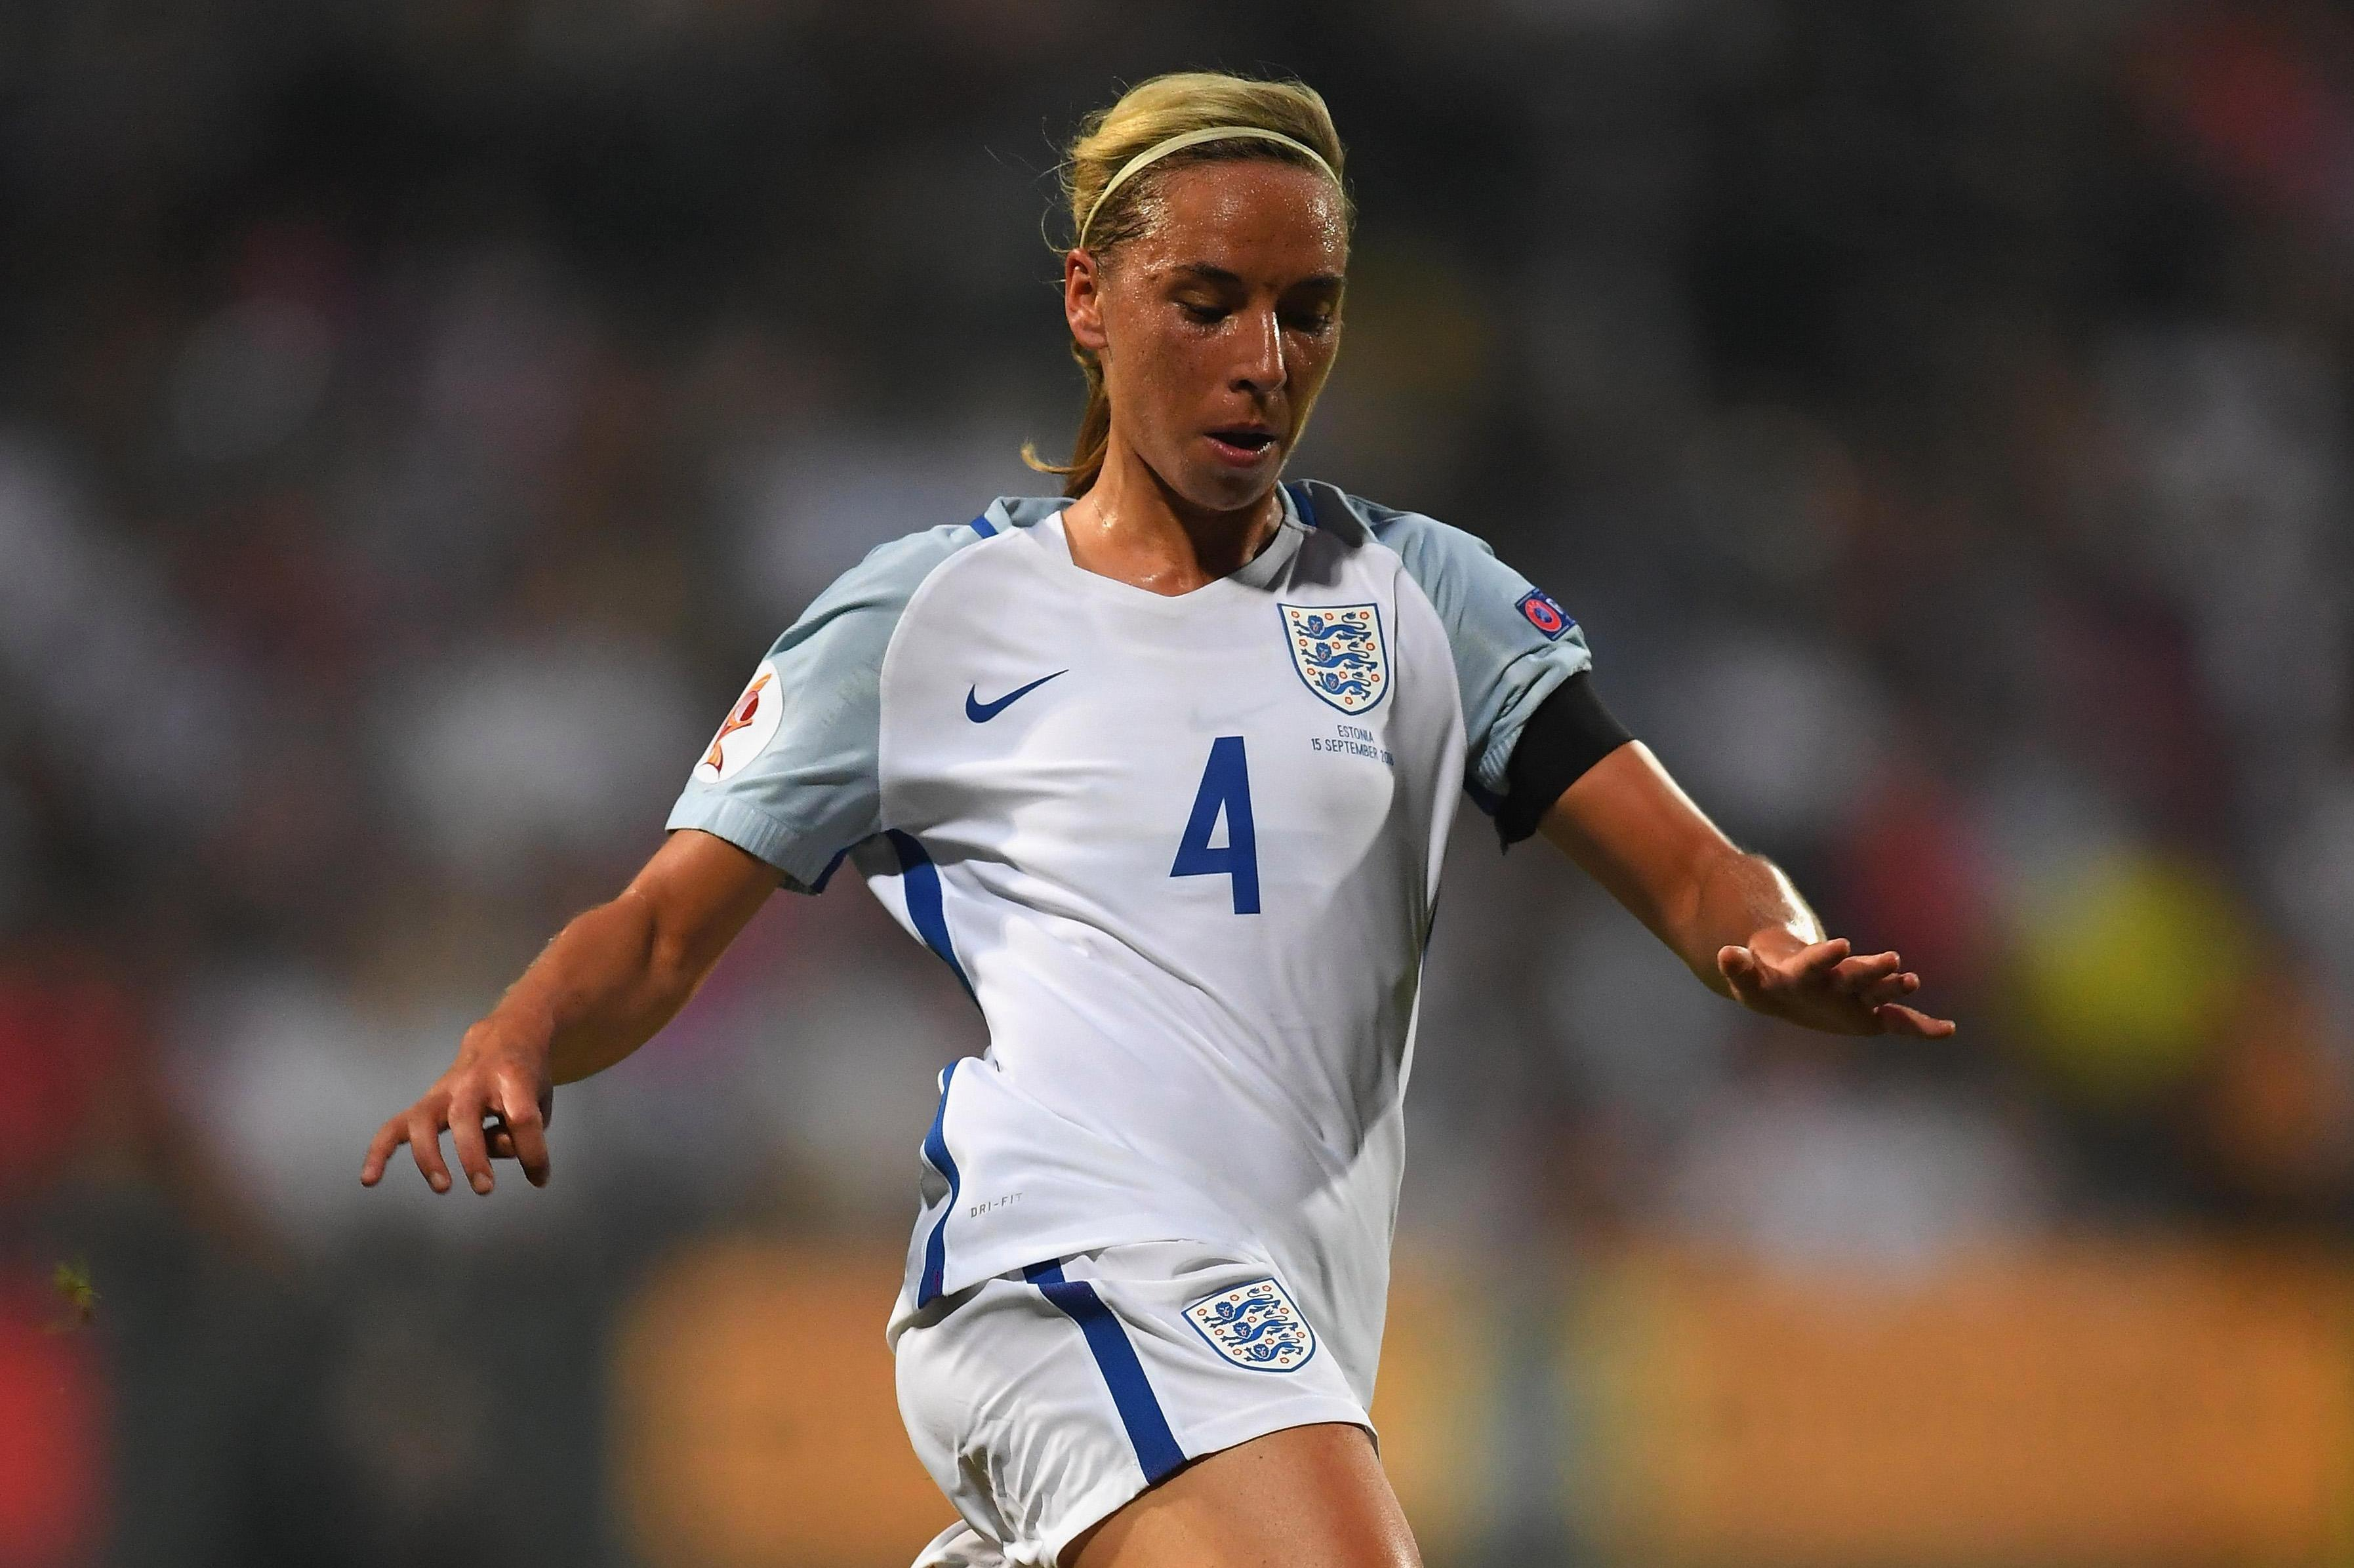 England hopes at Women's World Cup dealt blow as star player Jordan Nobbs ruled out of tournament